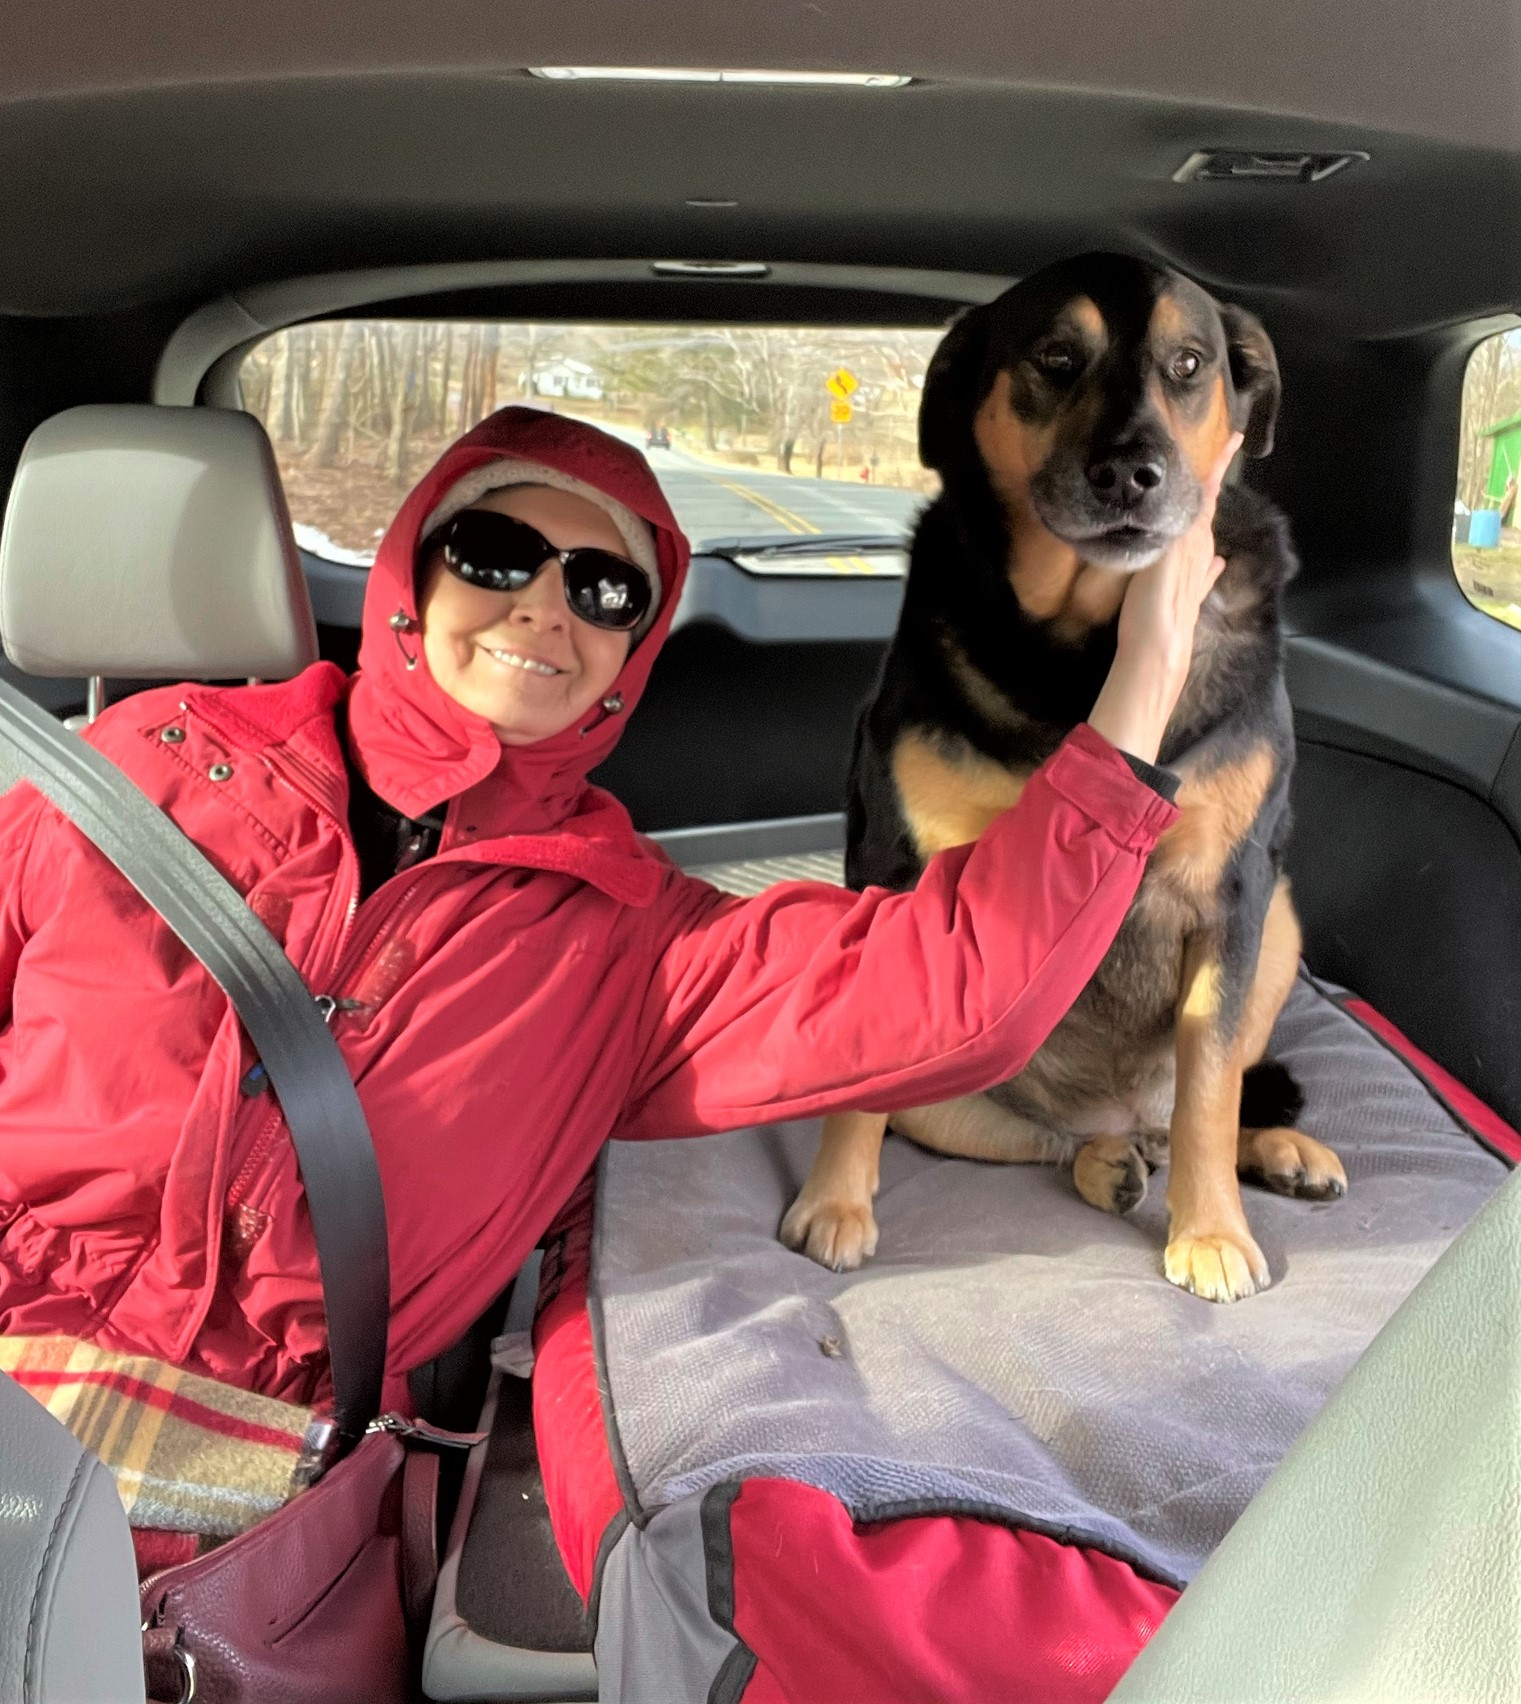 Dog and a woman in a car